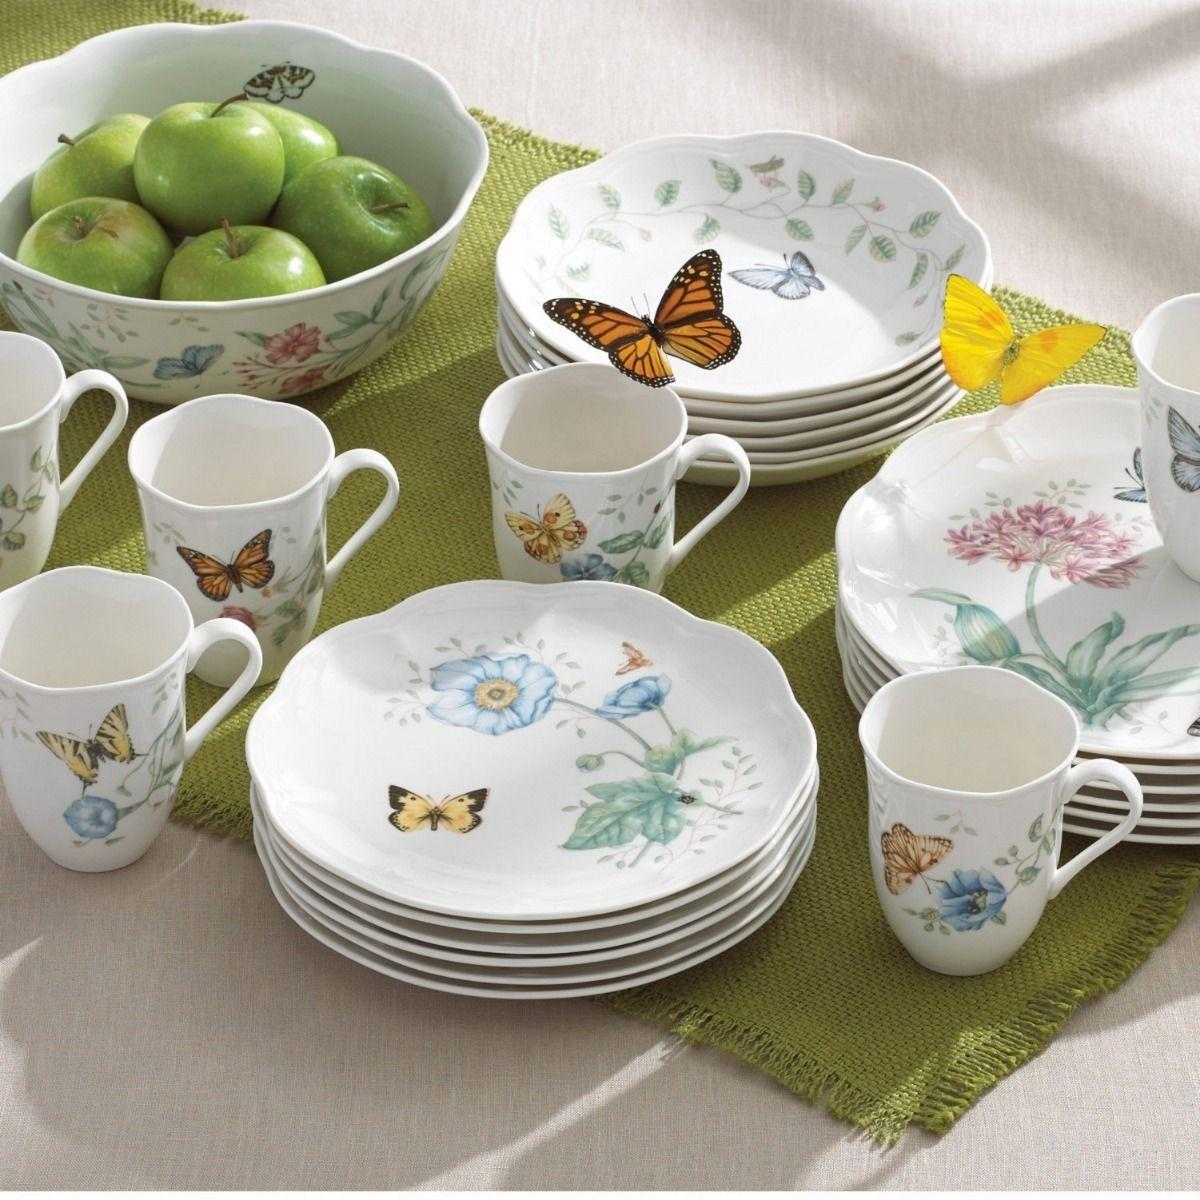 $22.32 Lenox Butterfly Meadow Party Plates, Set of 6 @ Amazon